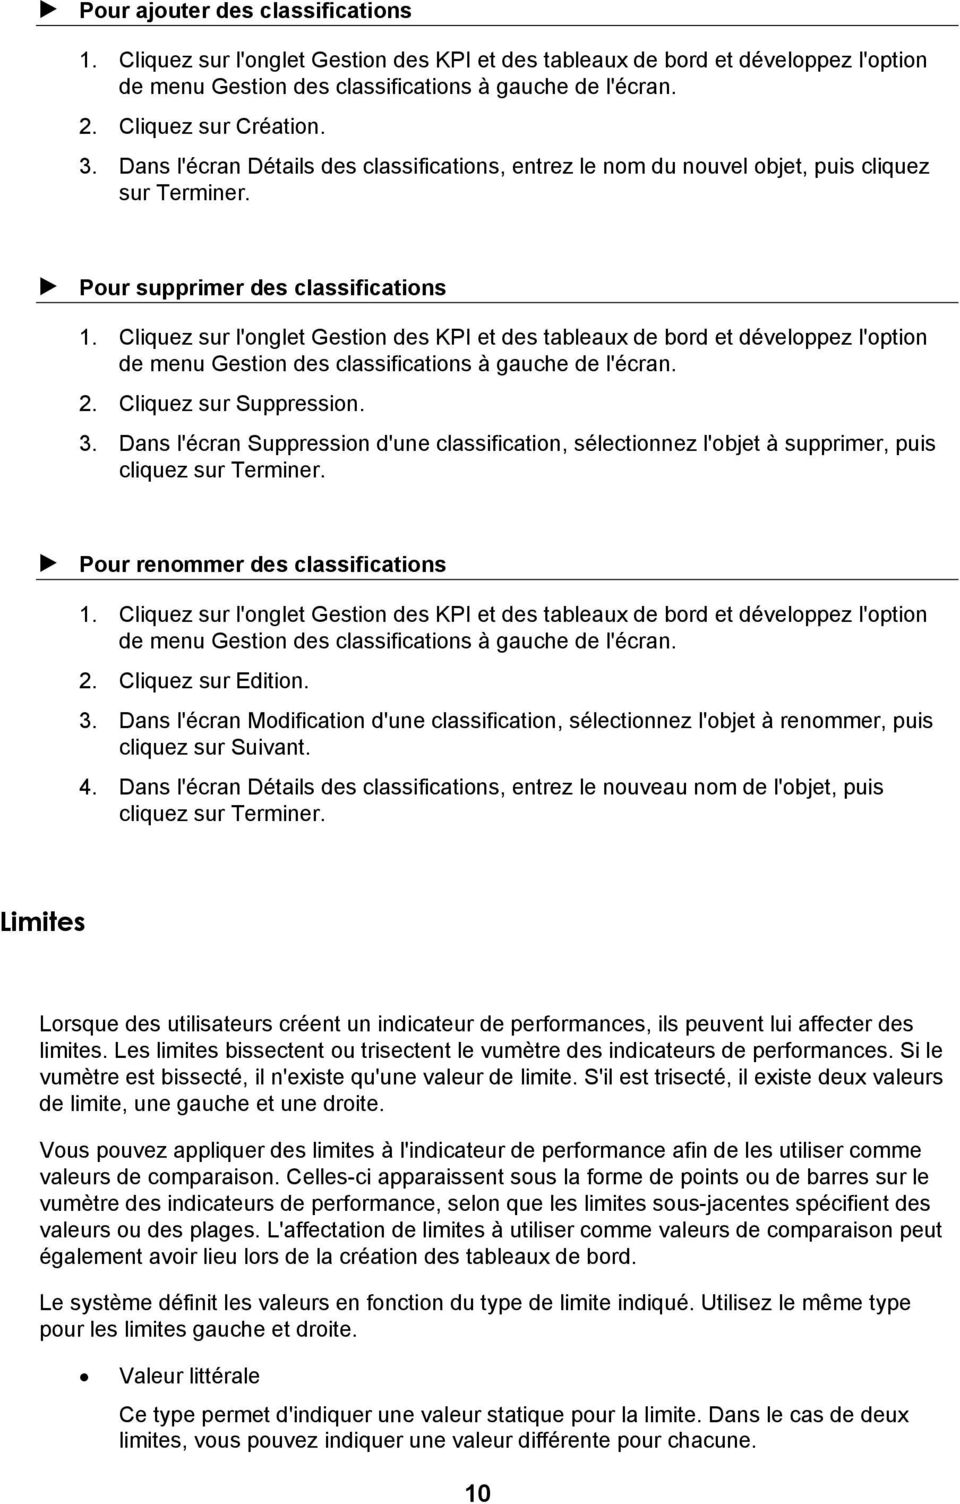 Cliquez sur l'onglet Gestion des KPI et des tableaux de bord et développez l'option de menu Gestion des classifications à gauche de l'écran. 2. Cliquez sur Suppression. 3.